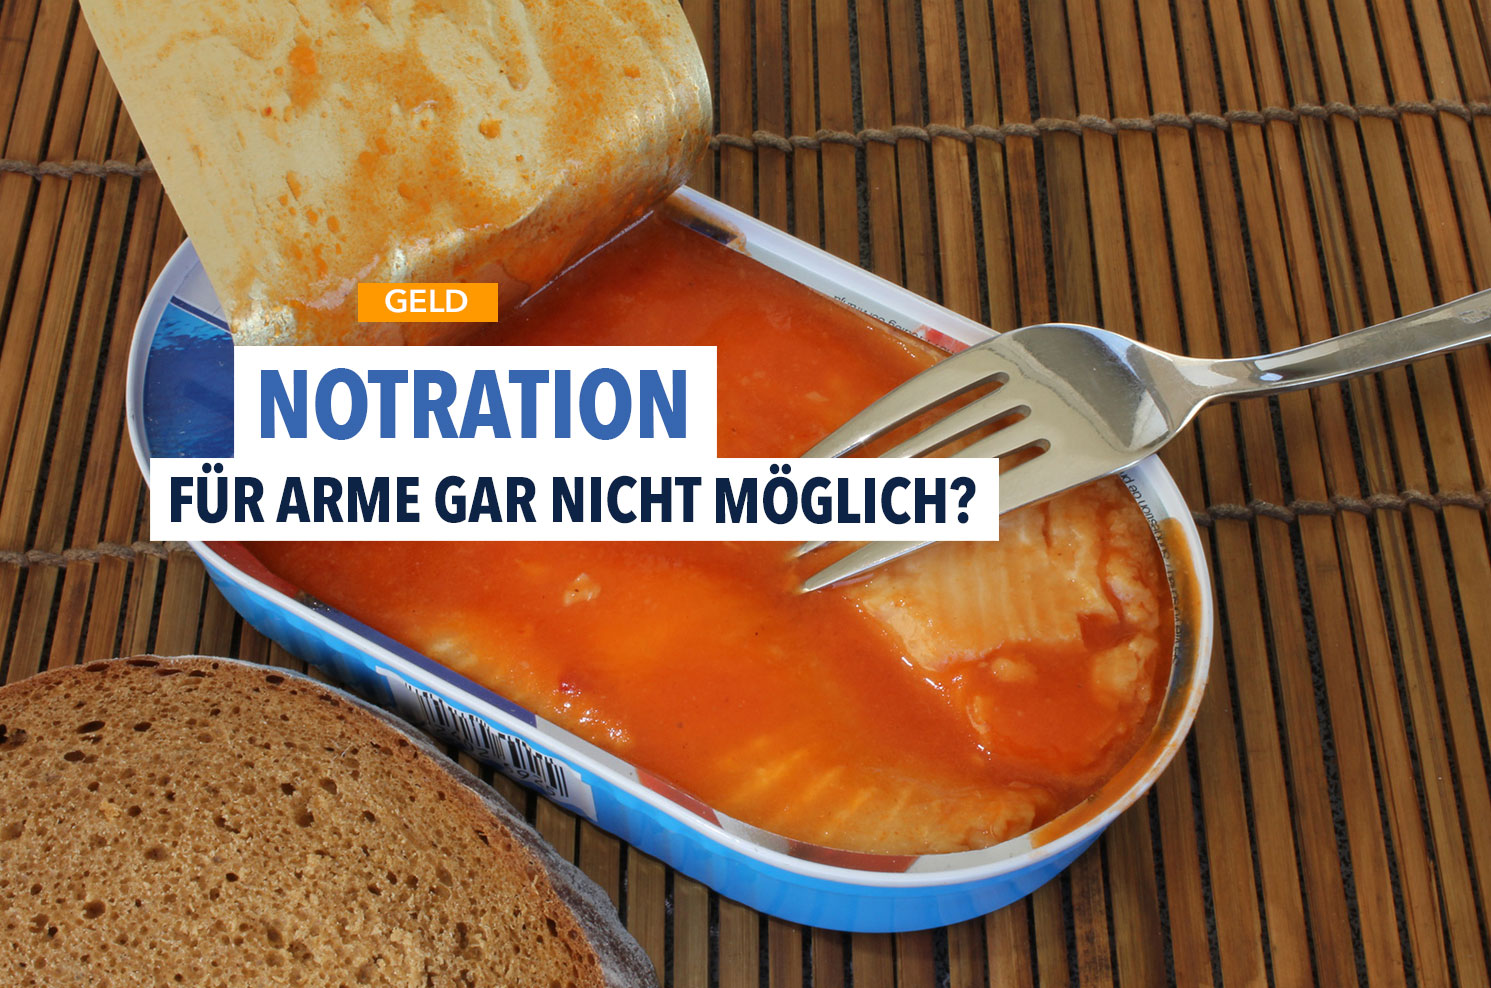 Notration